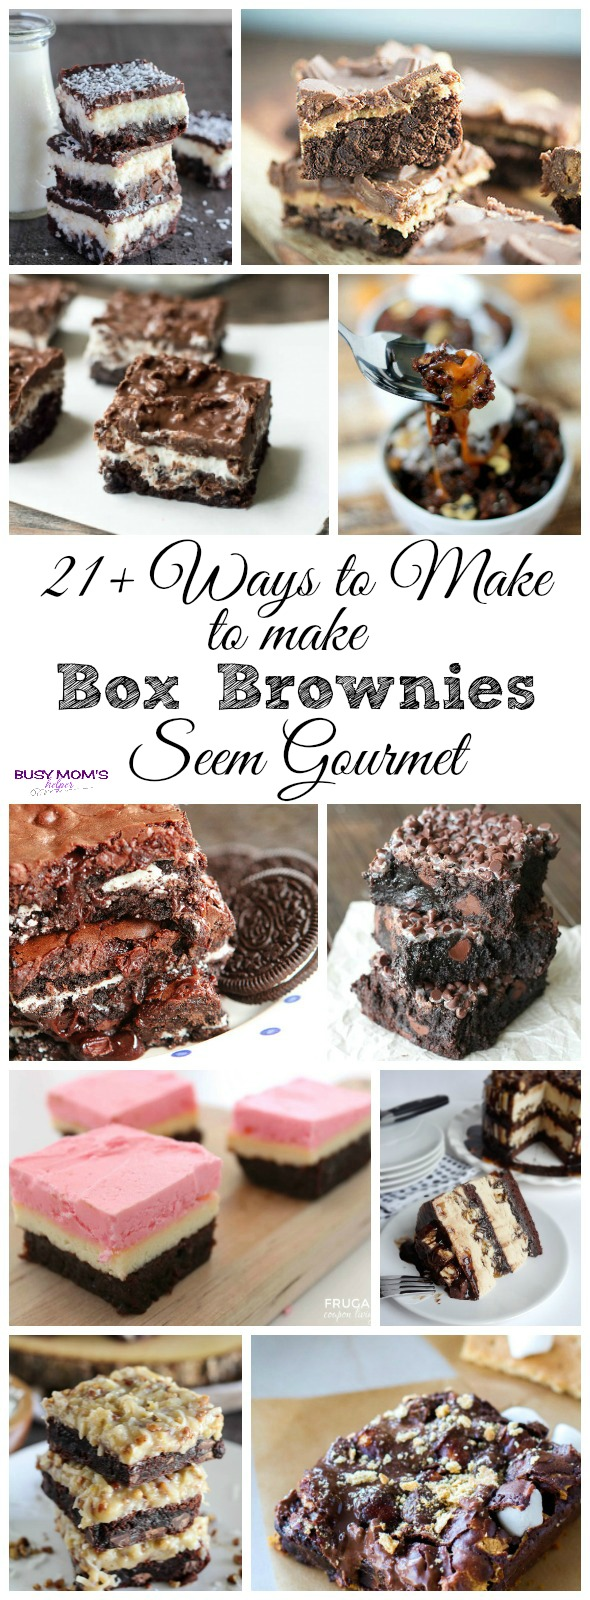 21+ Ways to Make Box Brownies Seem Gourmet / When you're in a hurry, make box brownies better with these great ideas!